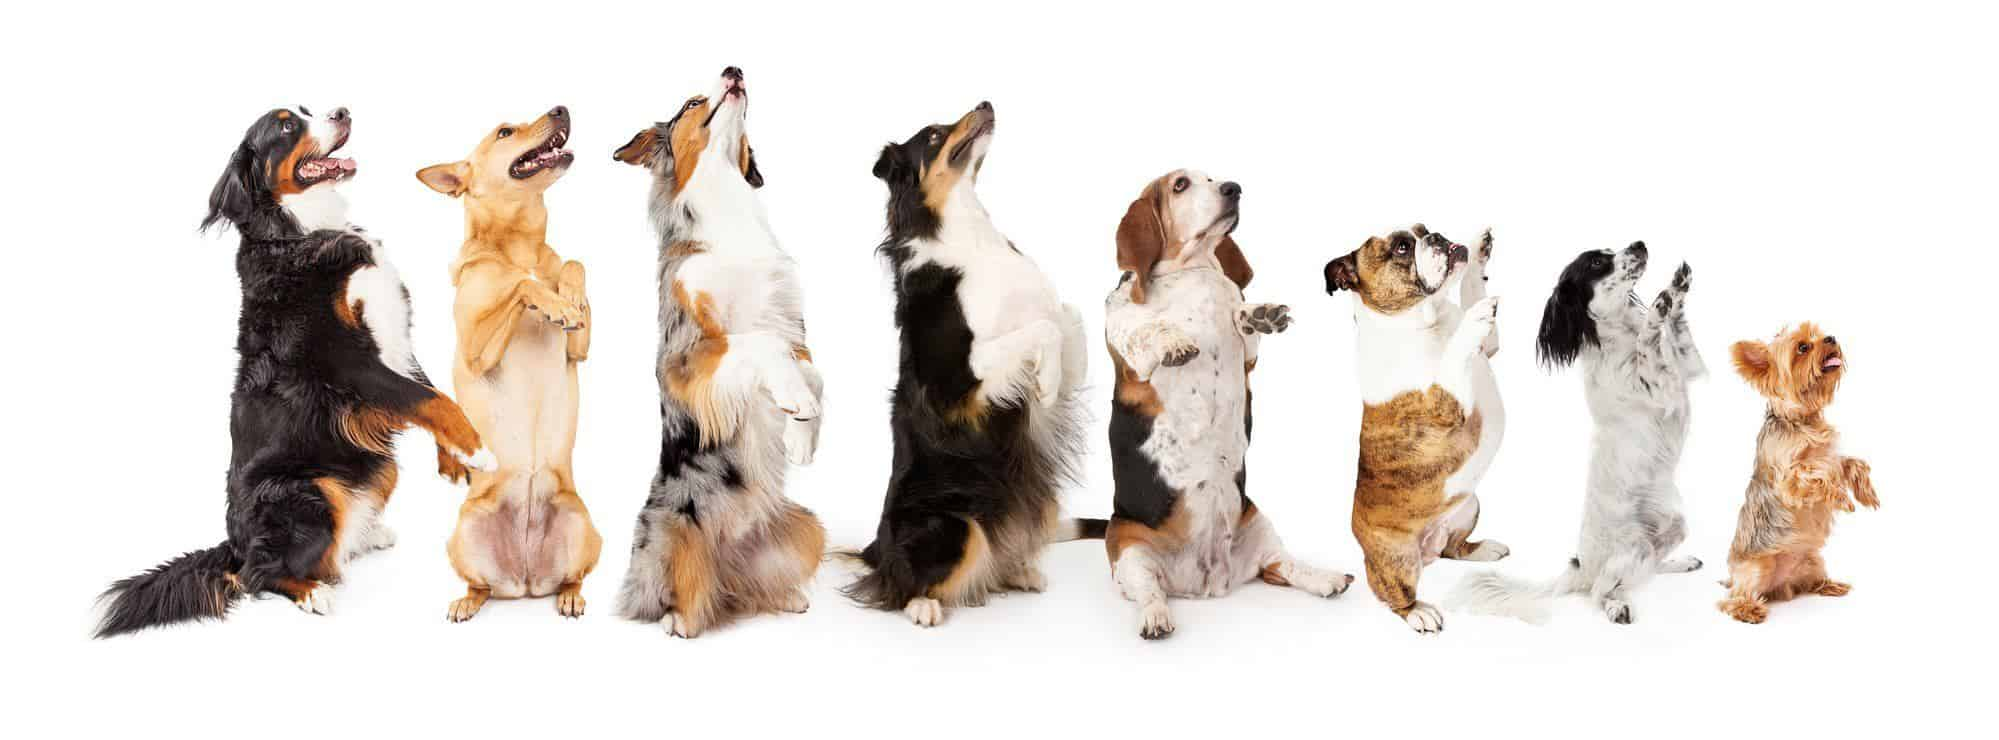 row of dogs standing